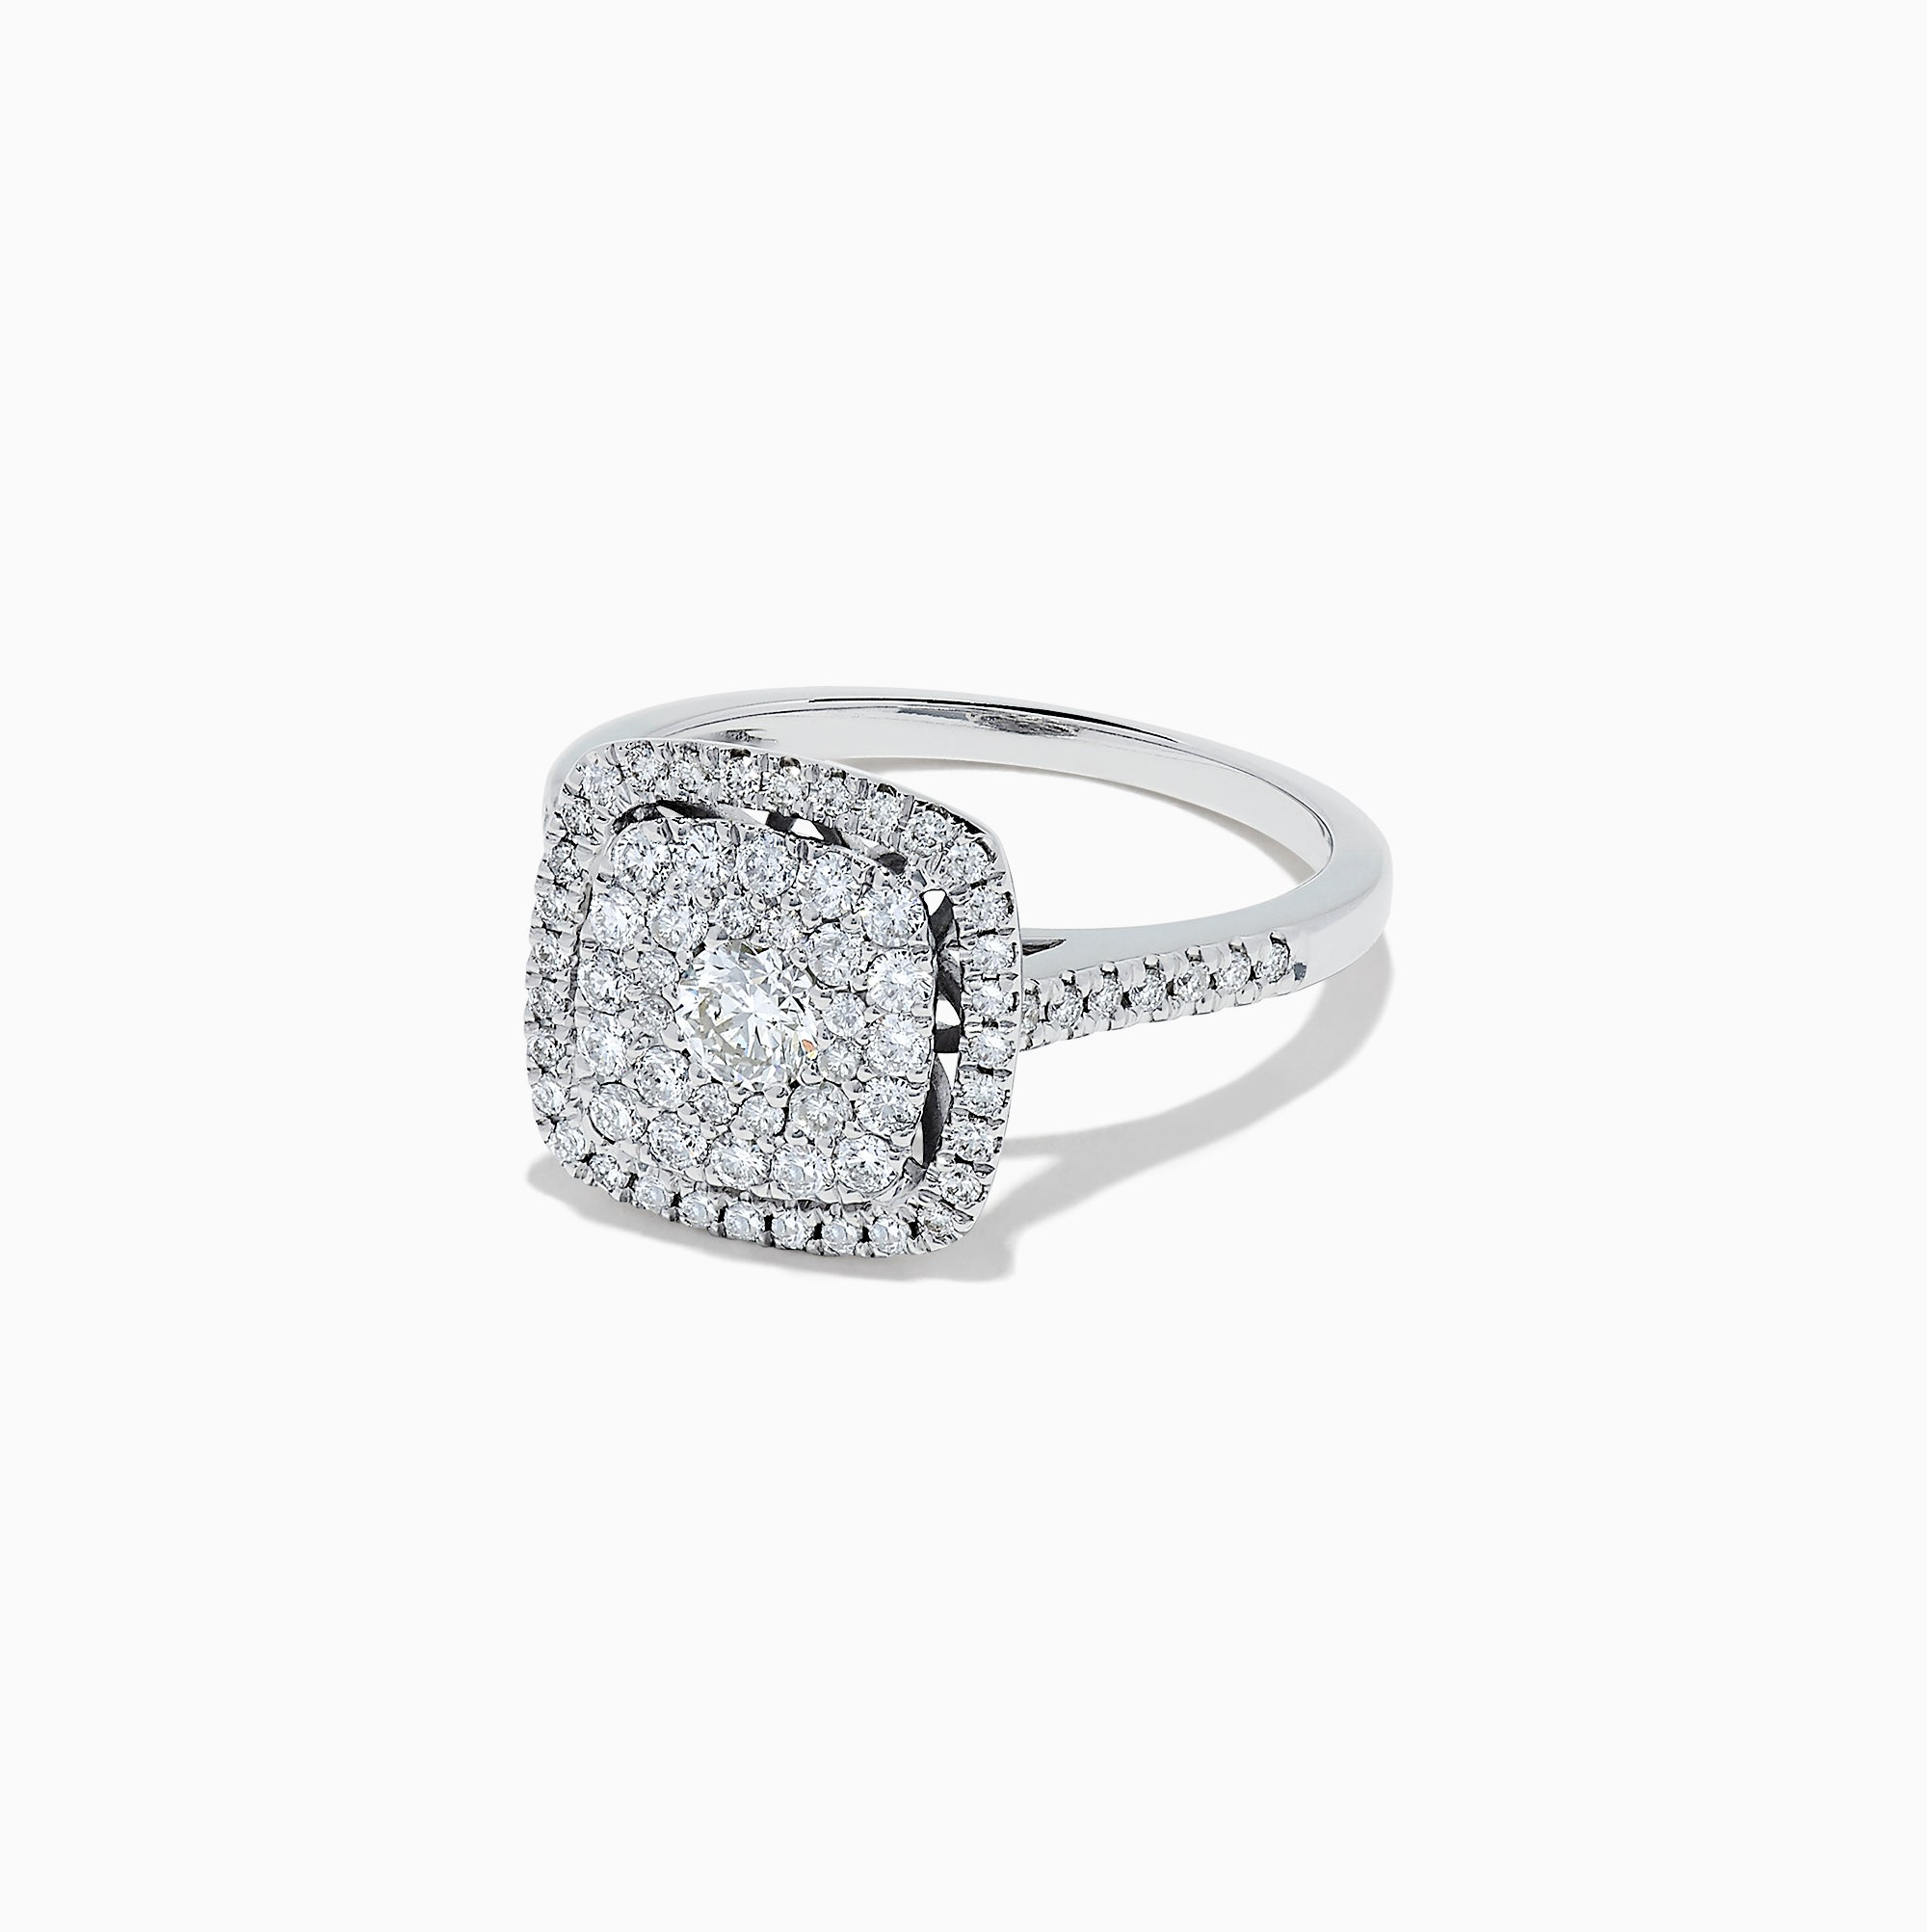 Effy Pave Classica 14K White Gold Diamond Ring, 0.83